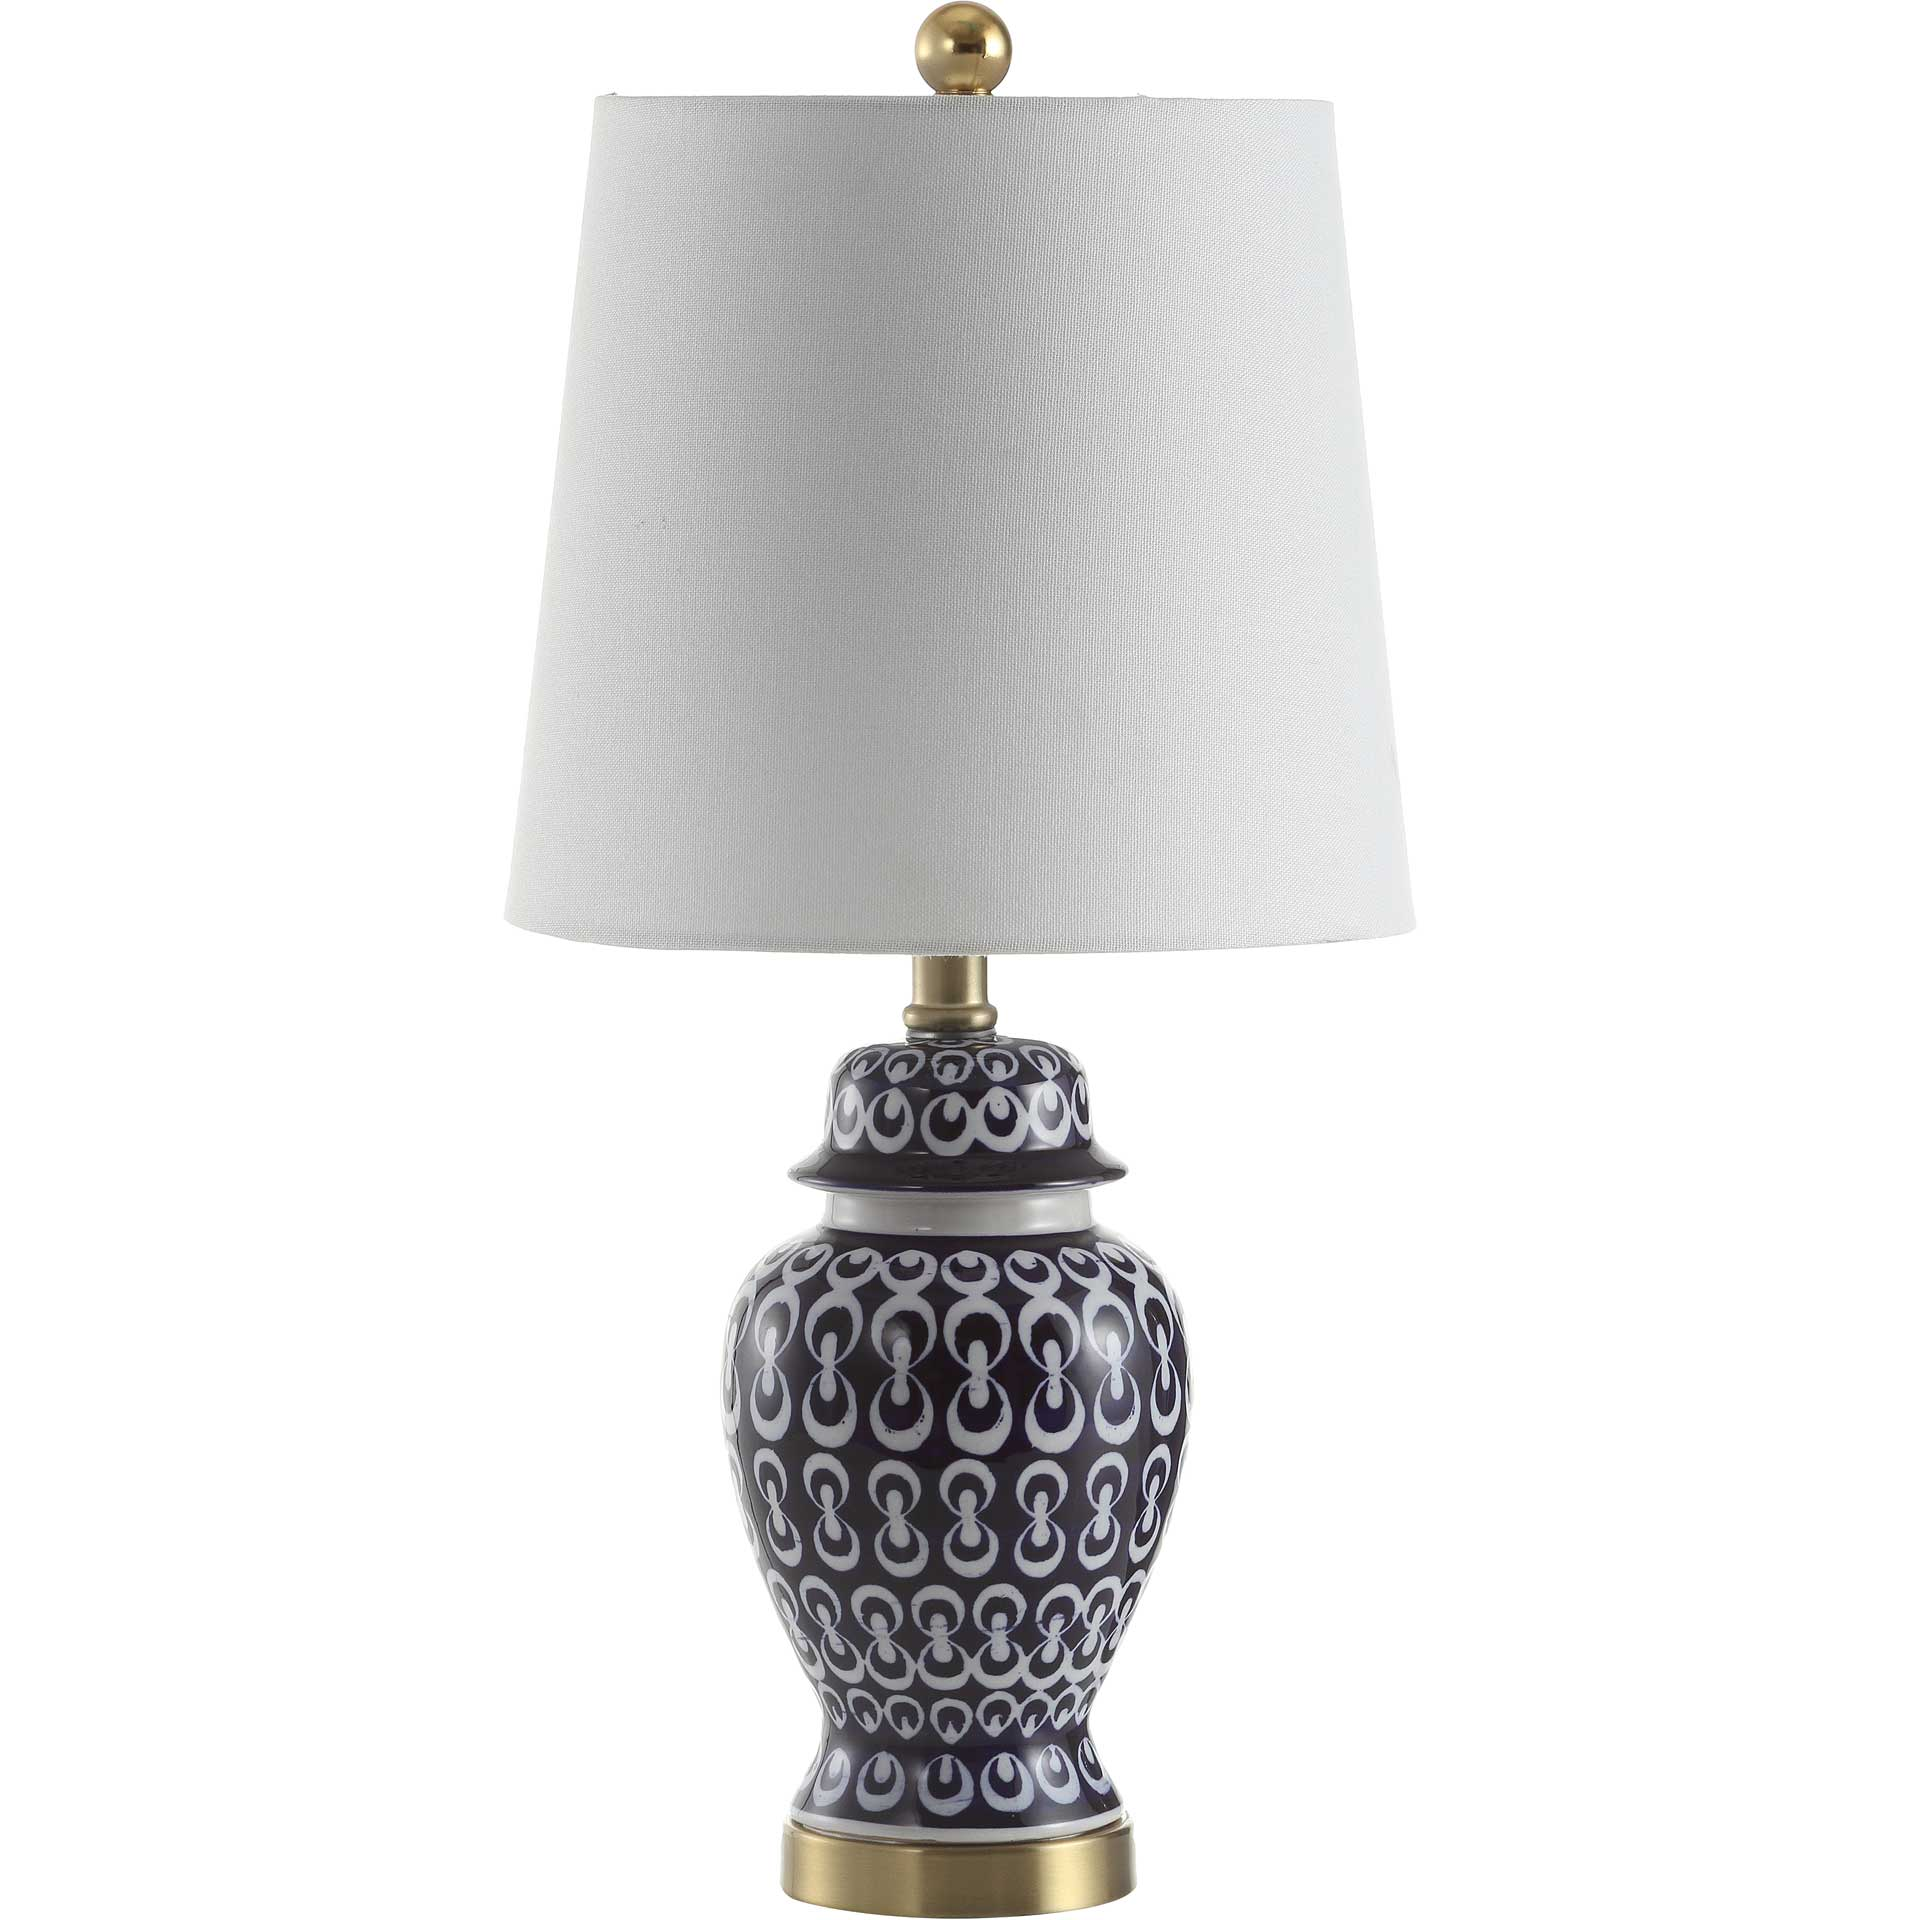 Kyng Table Lamp Blue/White